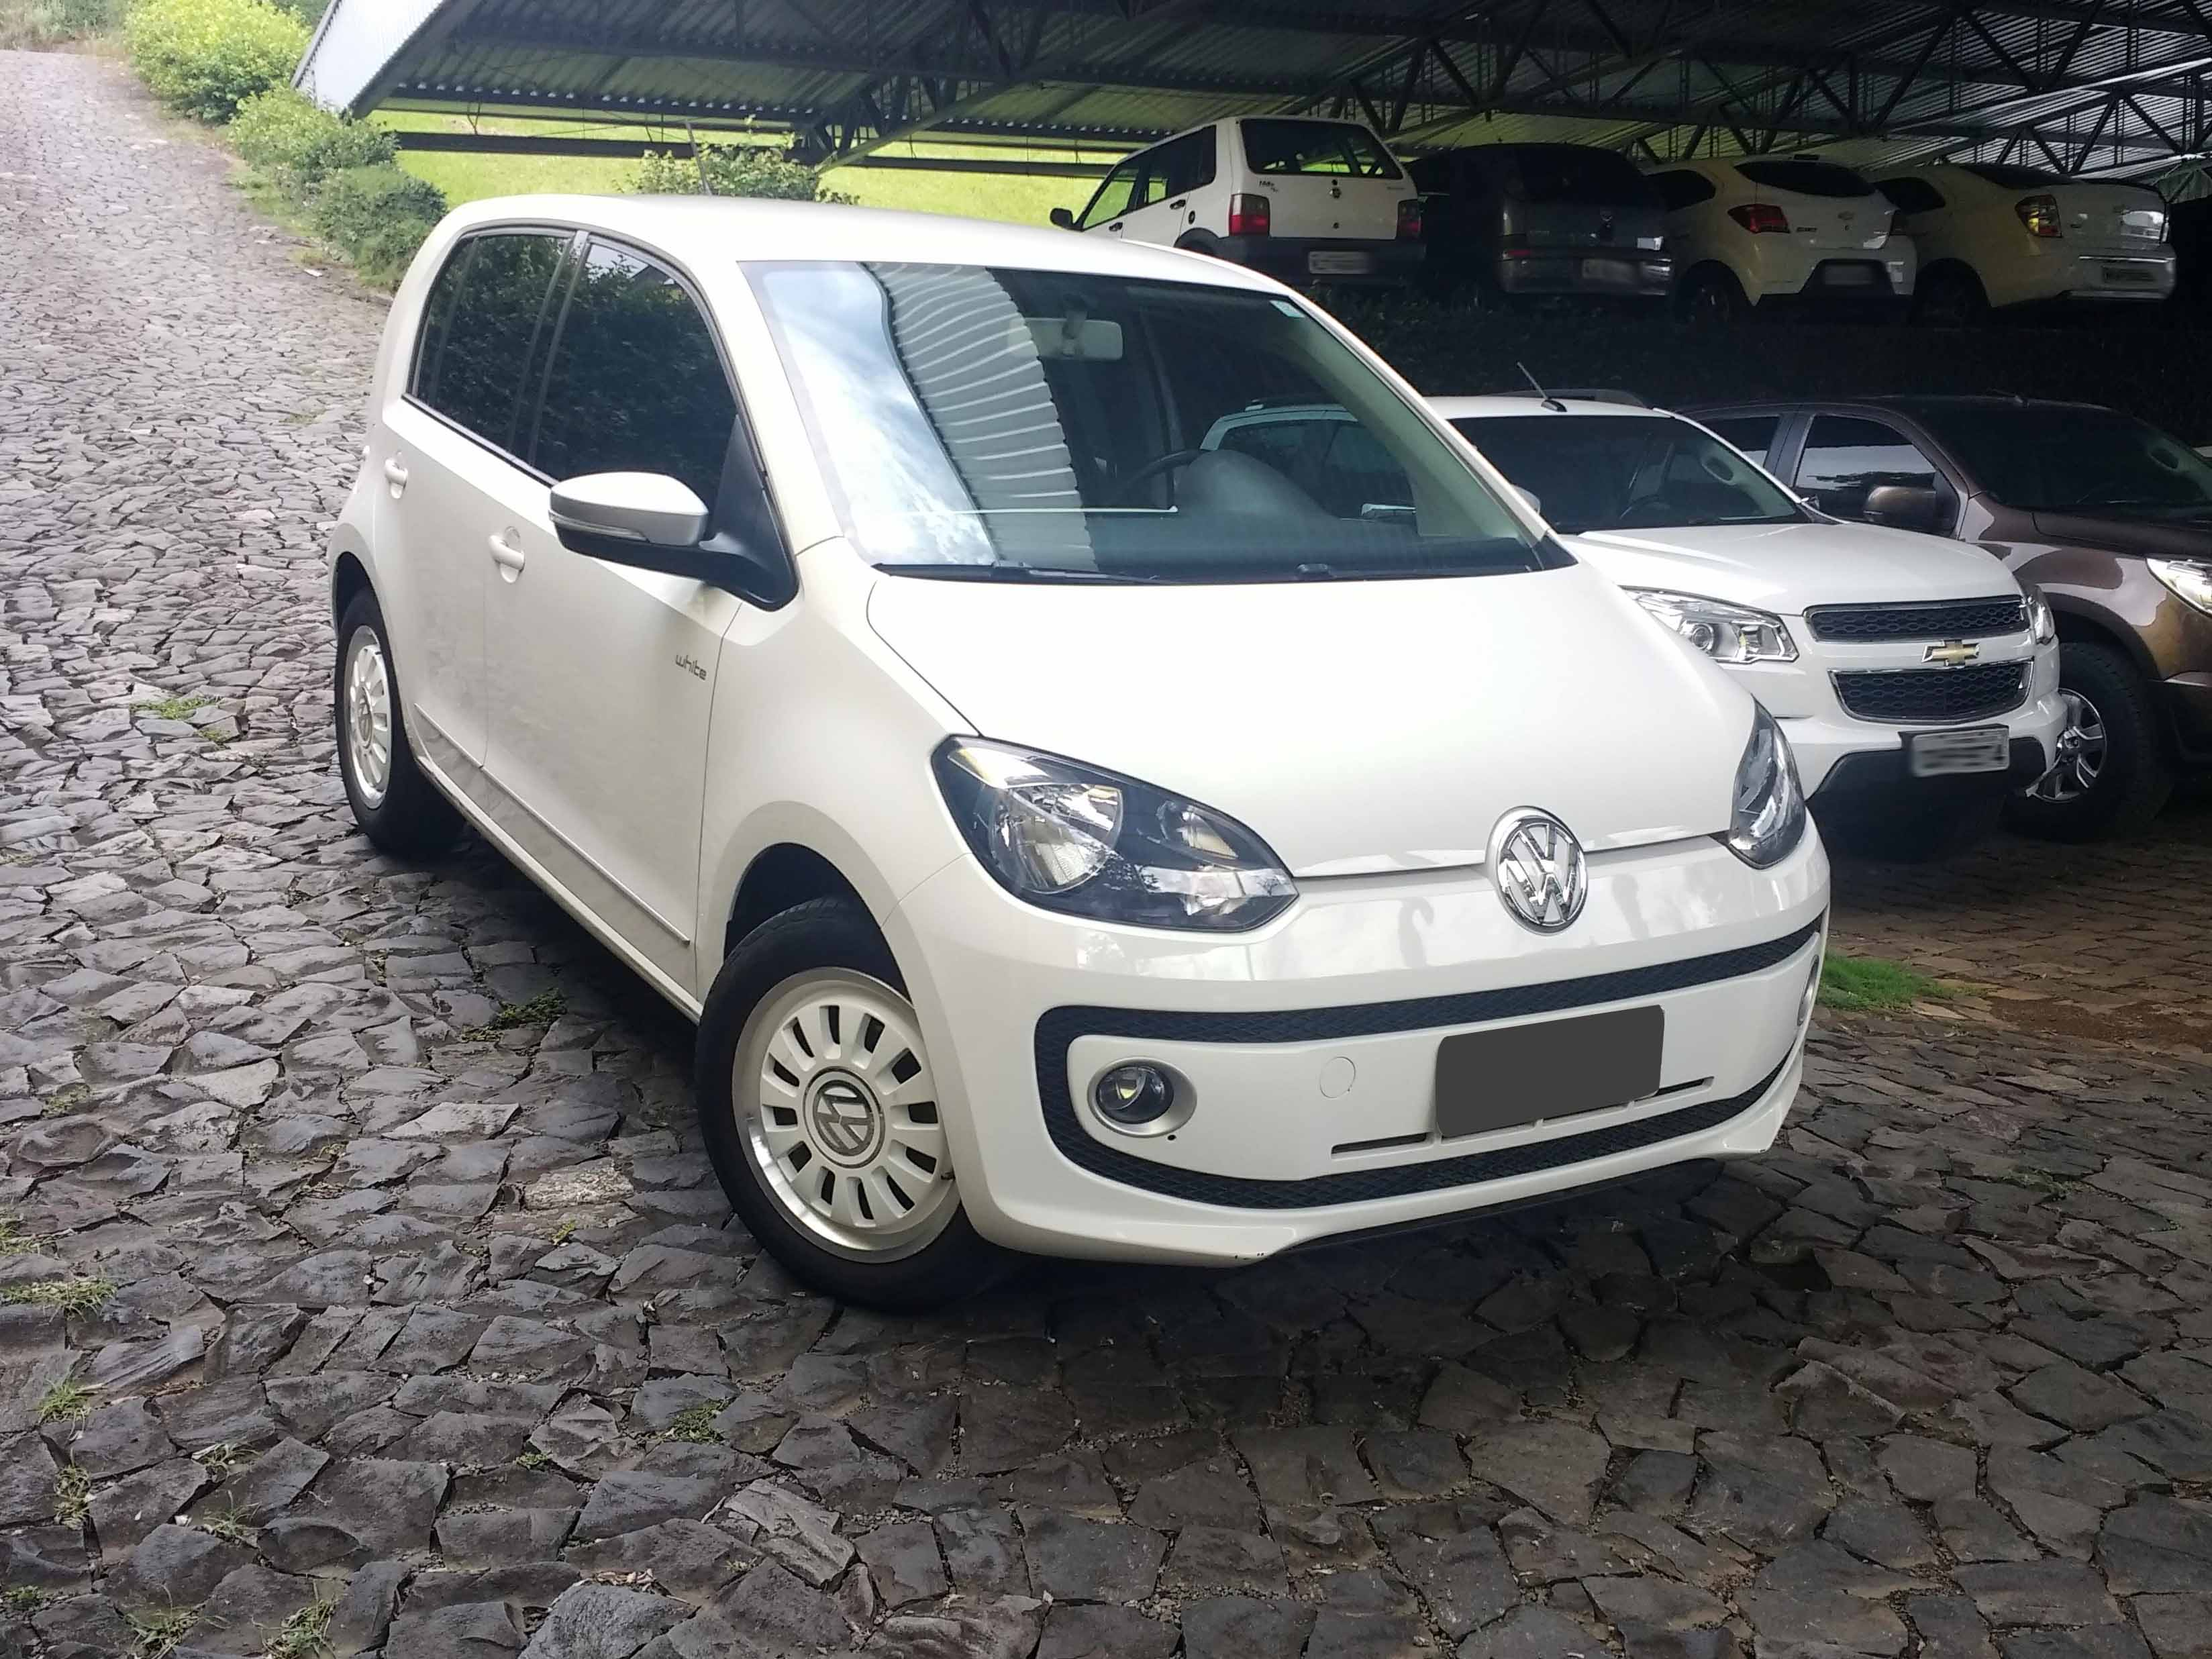 VOLKSWAGEN UP BLACK WHITE 1.0 2015